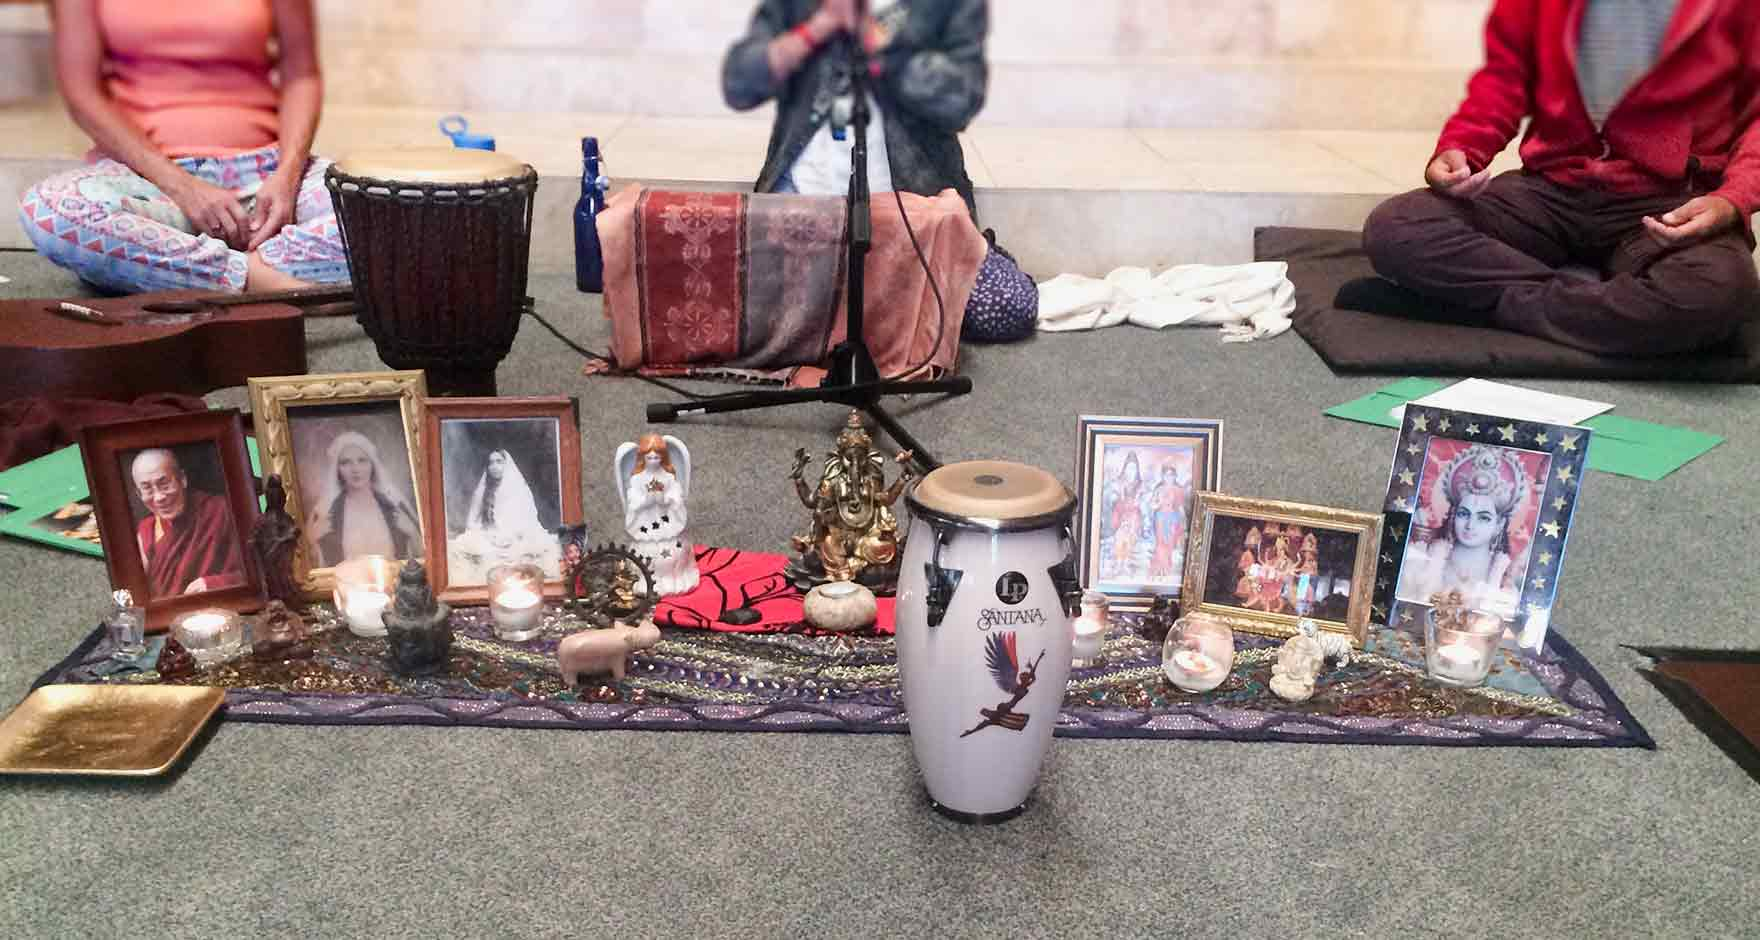 kirtan altar for the music and chants of Kirtan. The altar has framed photos and small statues on sitting on a sari